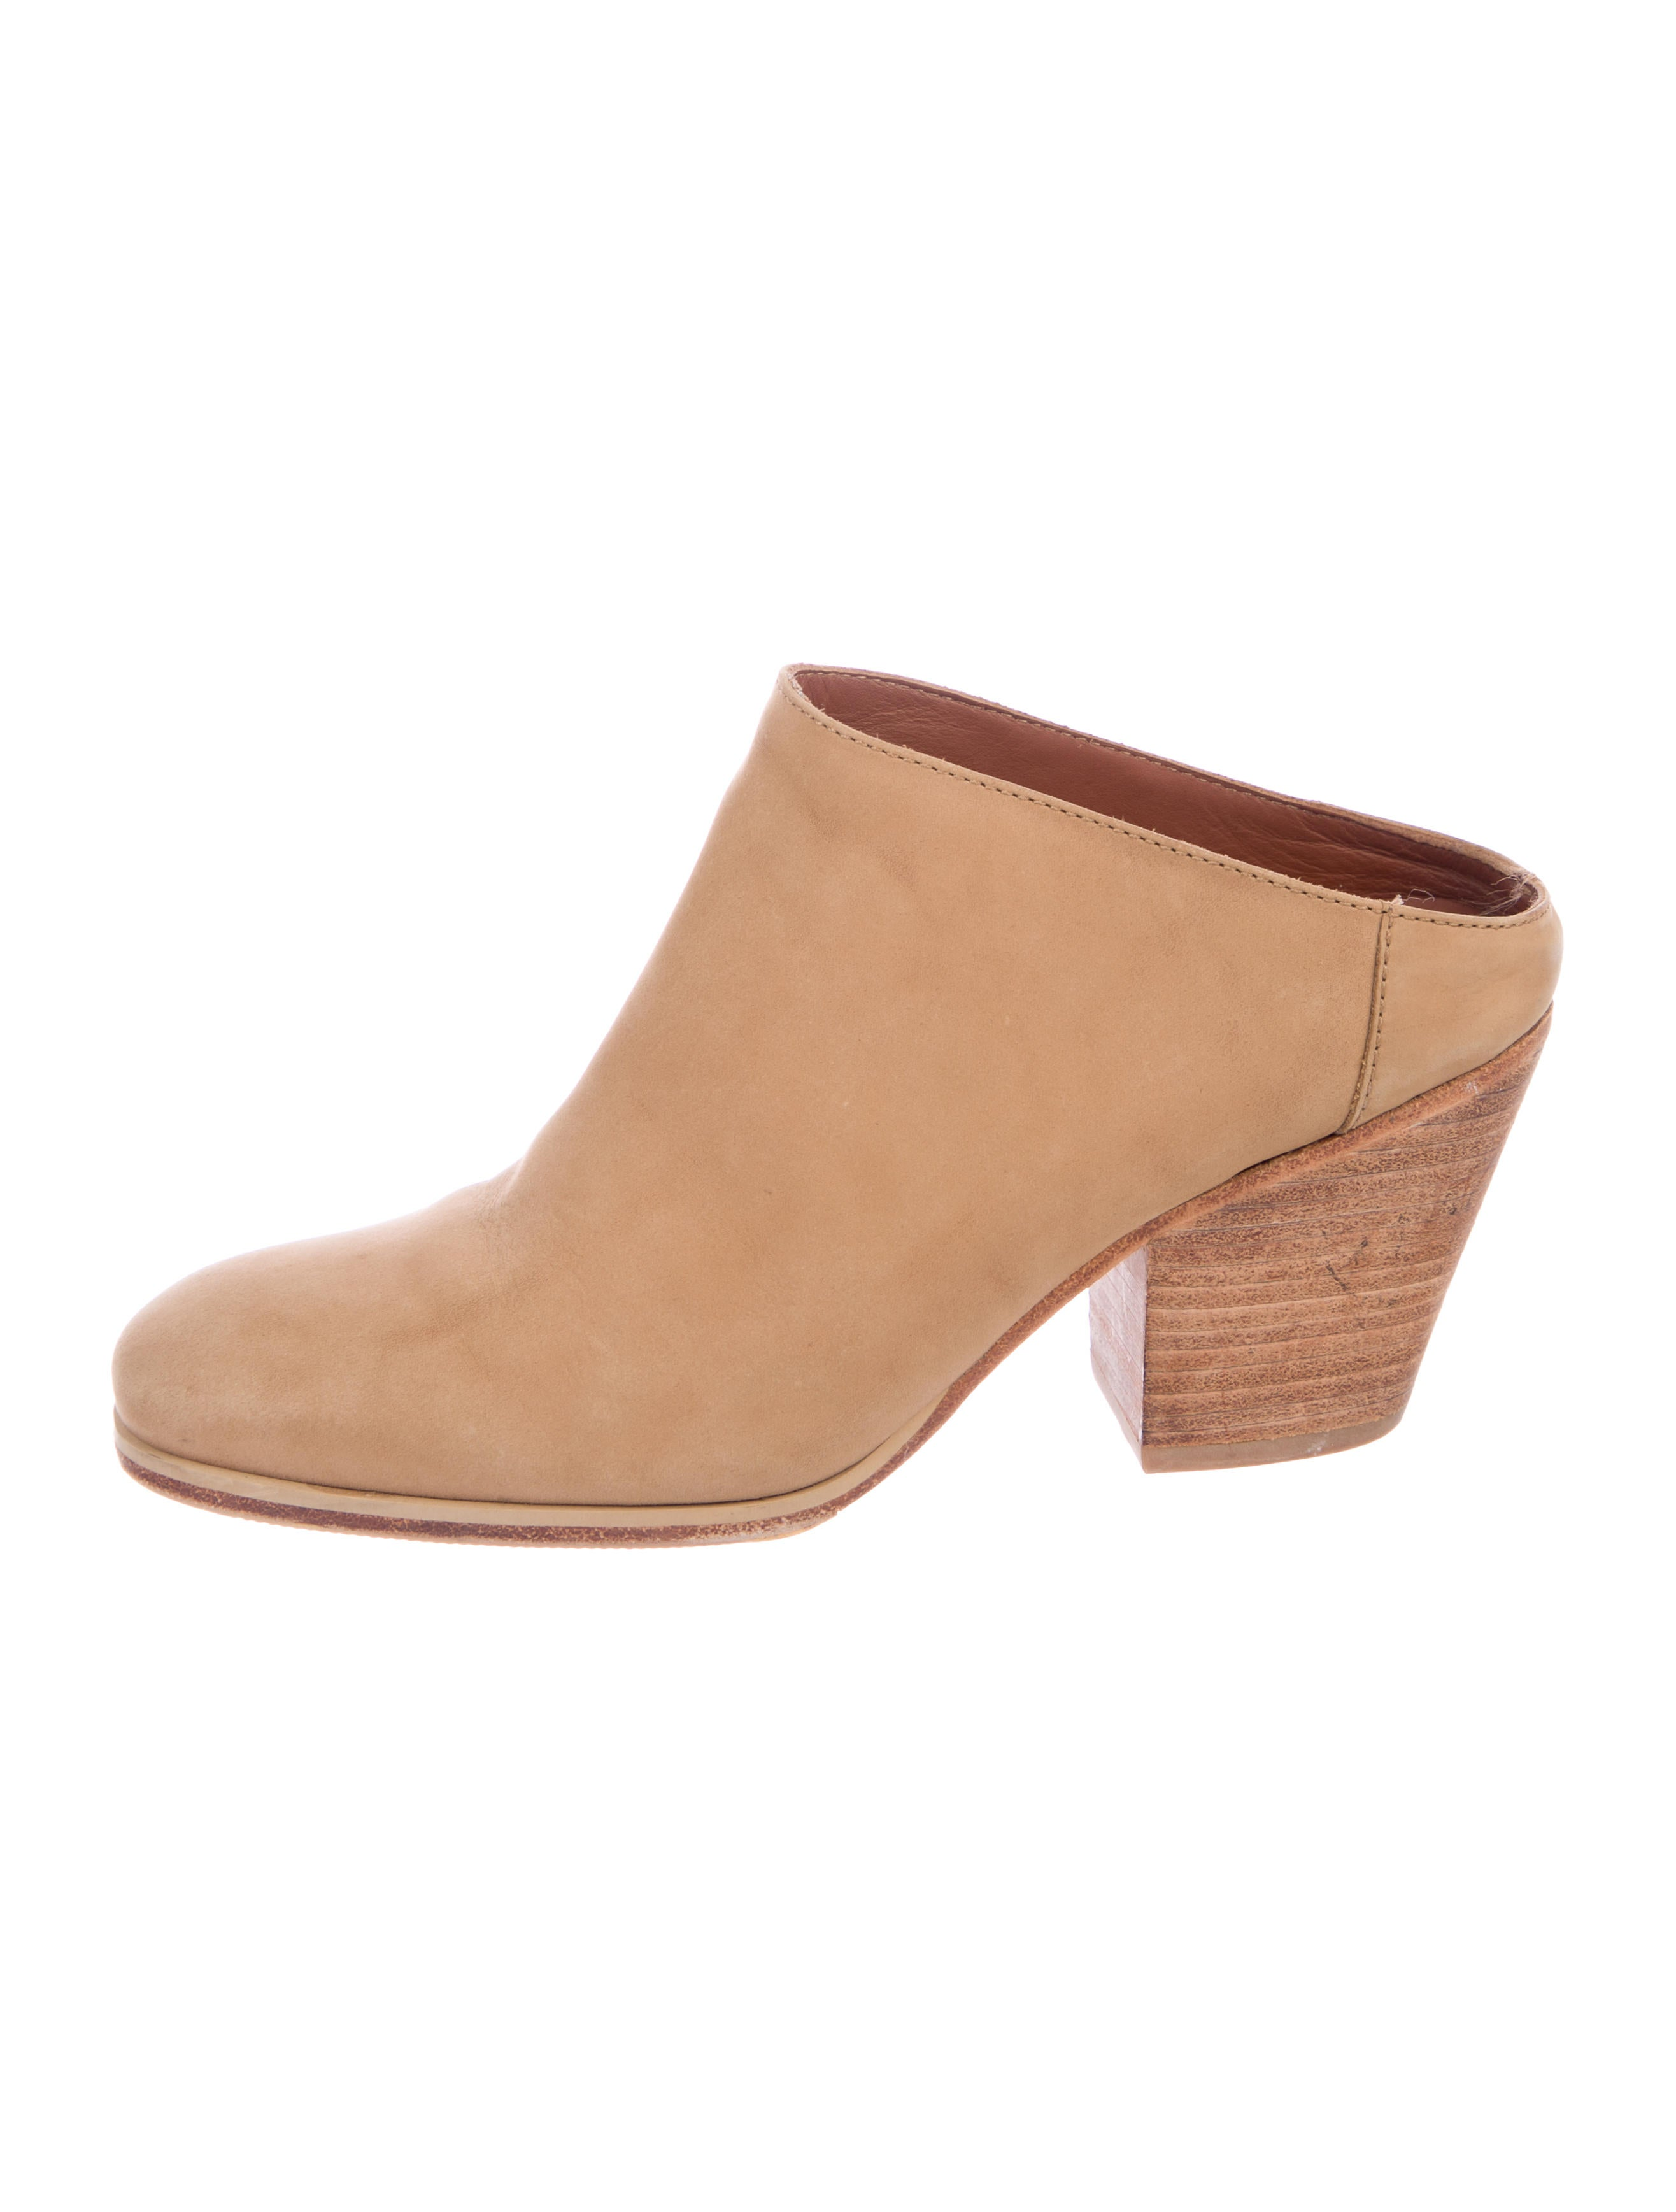 Rachel Comey Mars Round-Toe Mules discount view buy cheap huge surprise cheap sale low cost outlet for nice z19bQRGMKo